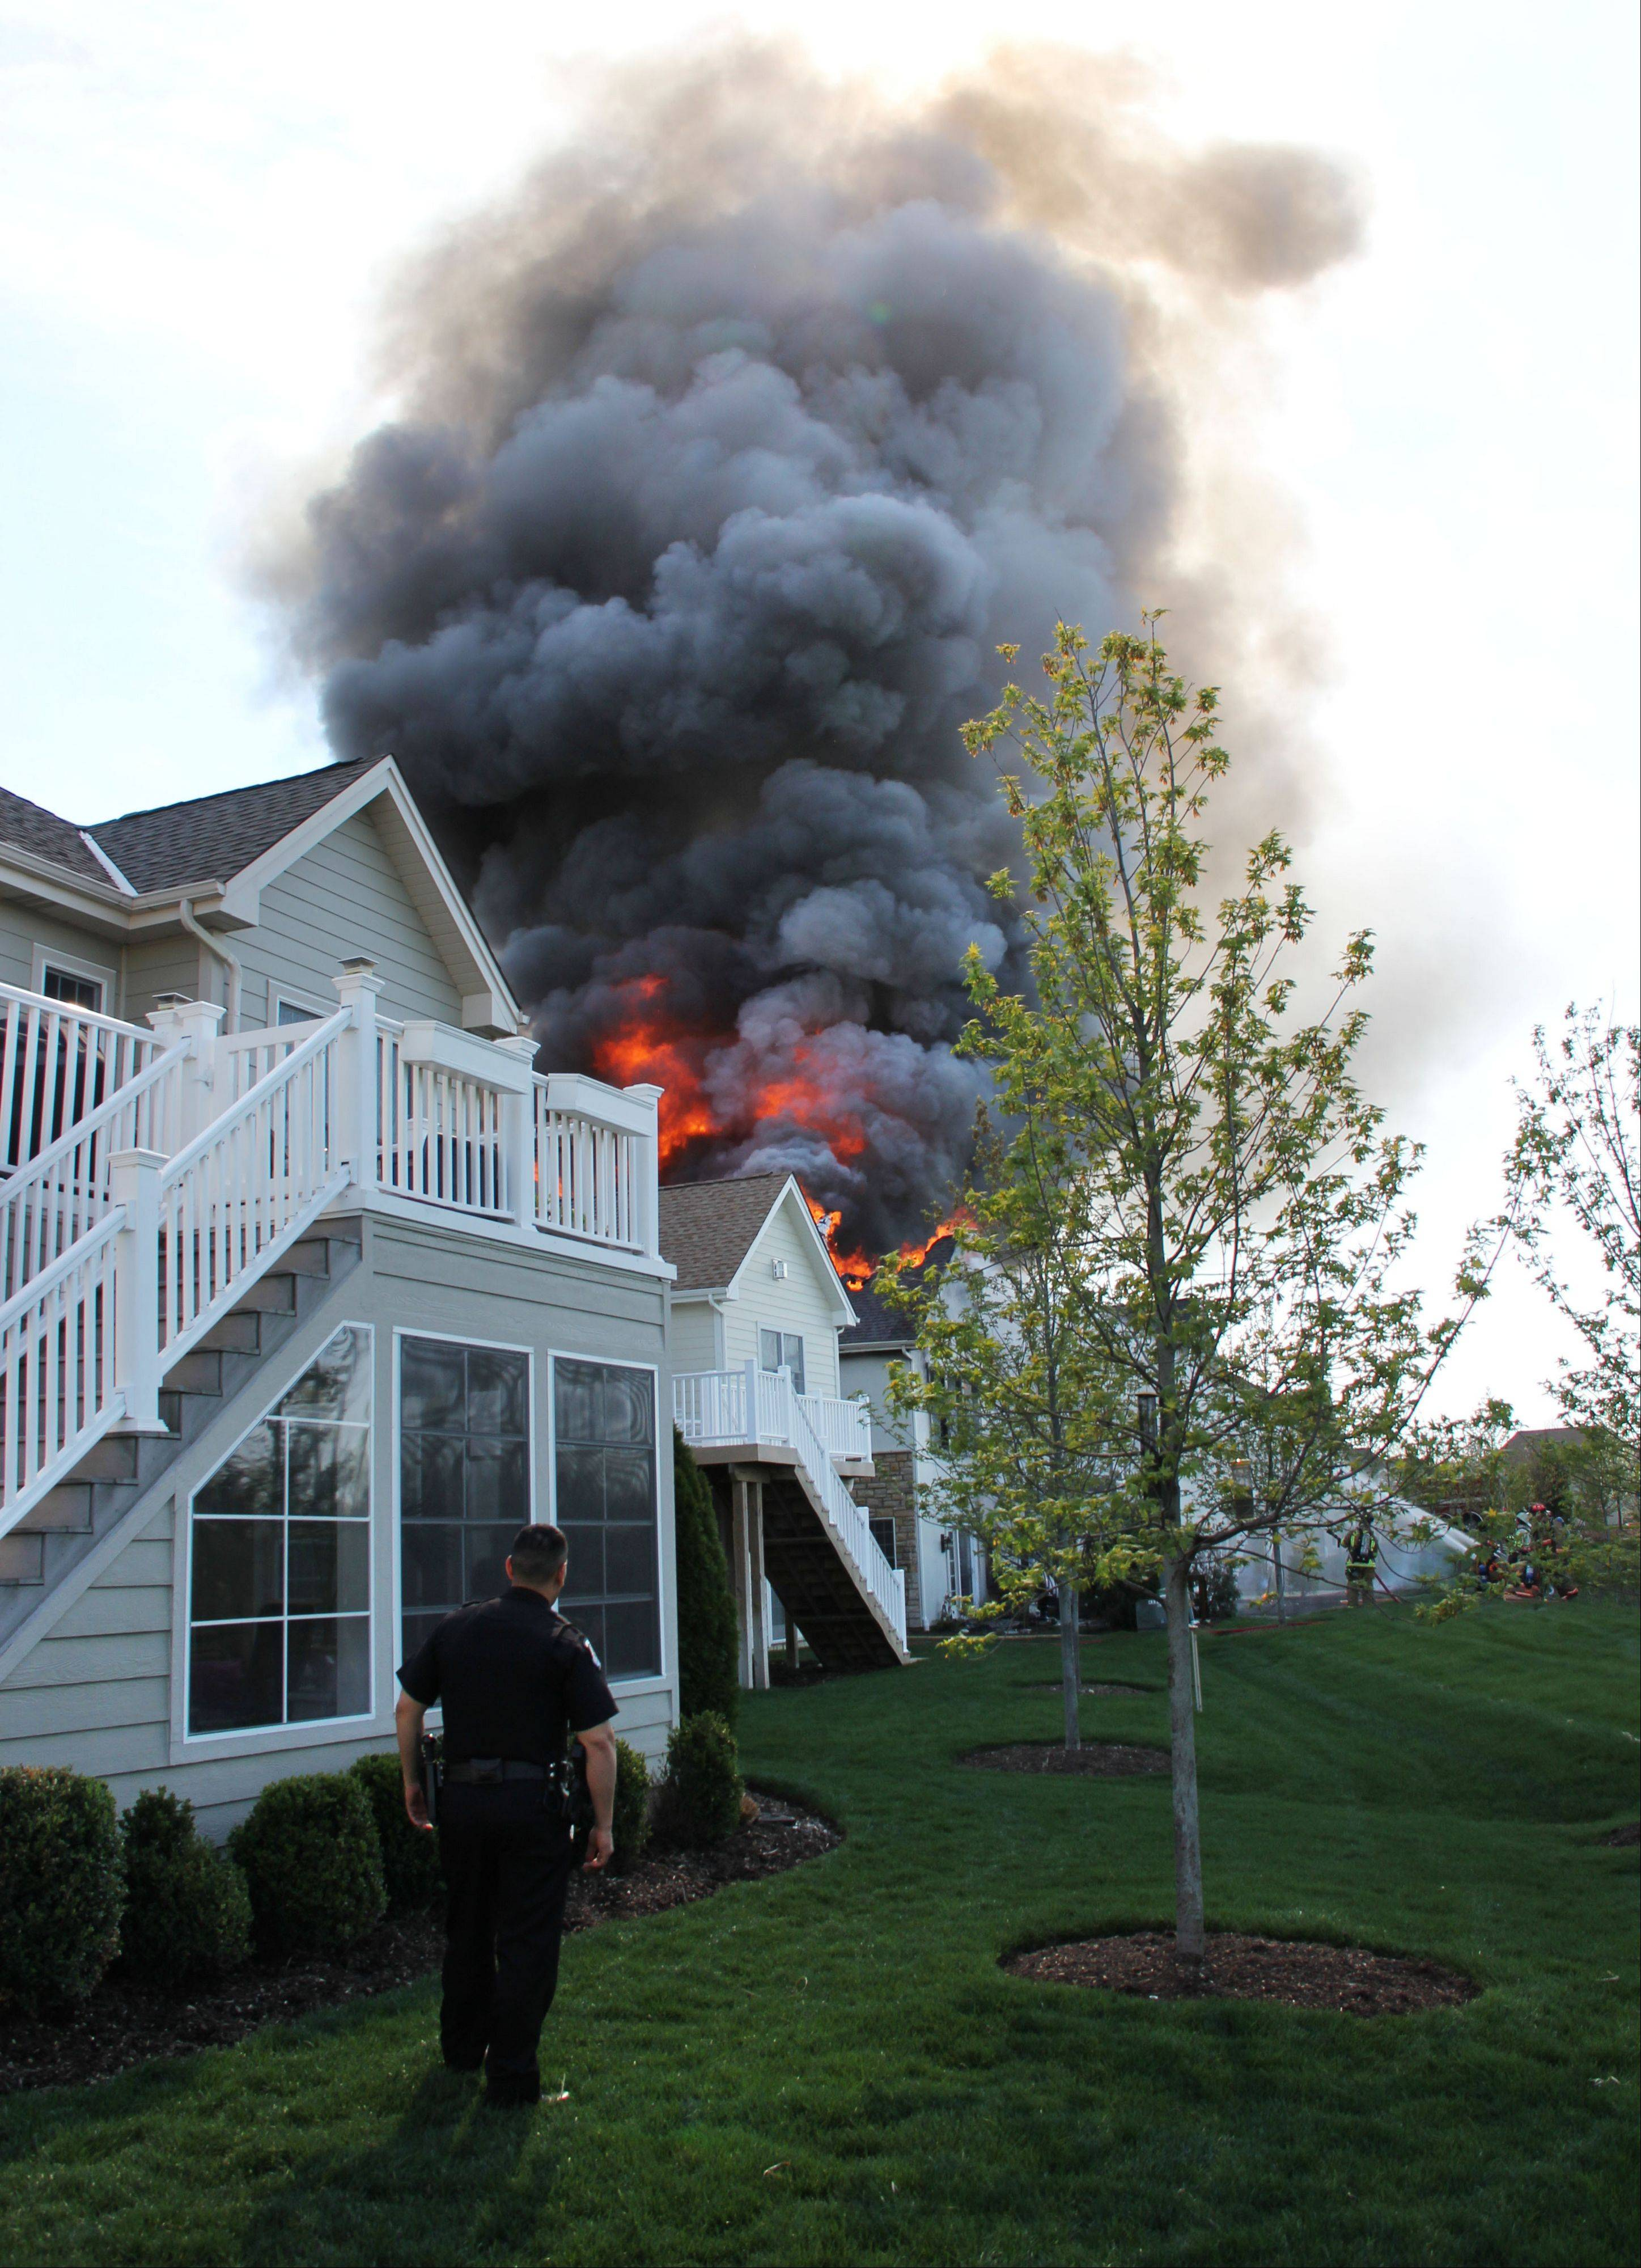 Fire and rescue personnel responded to a structure fire Tuesday afternoon on Aztec Court in South Barrington.